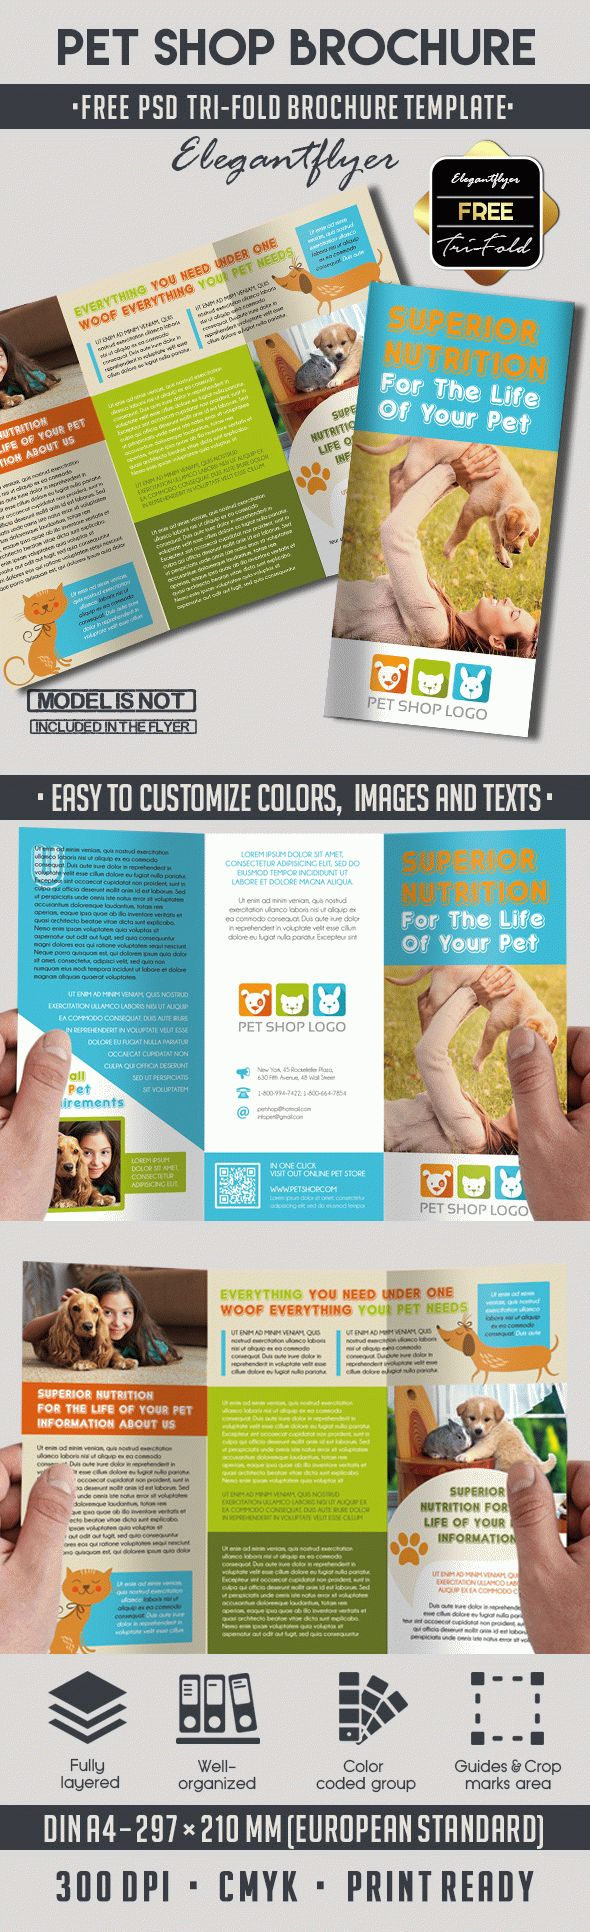 Pet Shop Free PSD TriFold PSD Brochure Template by ElegantFlyer – Advertising Brochure Template